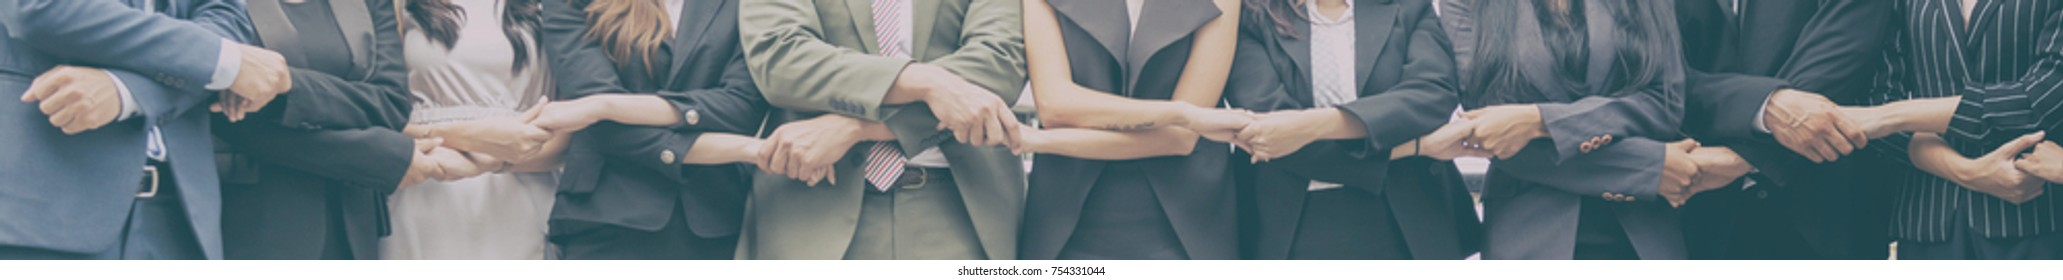 Smiling business team standing upright with holding hands. Mixed race business team concepts.